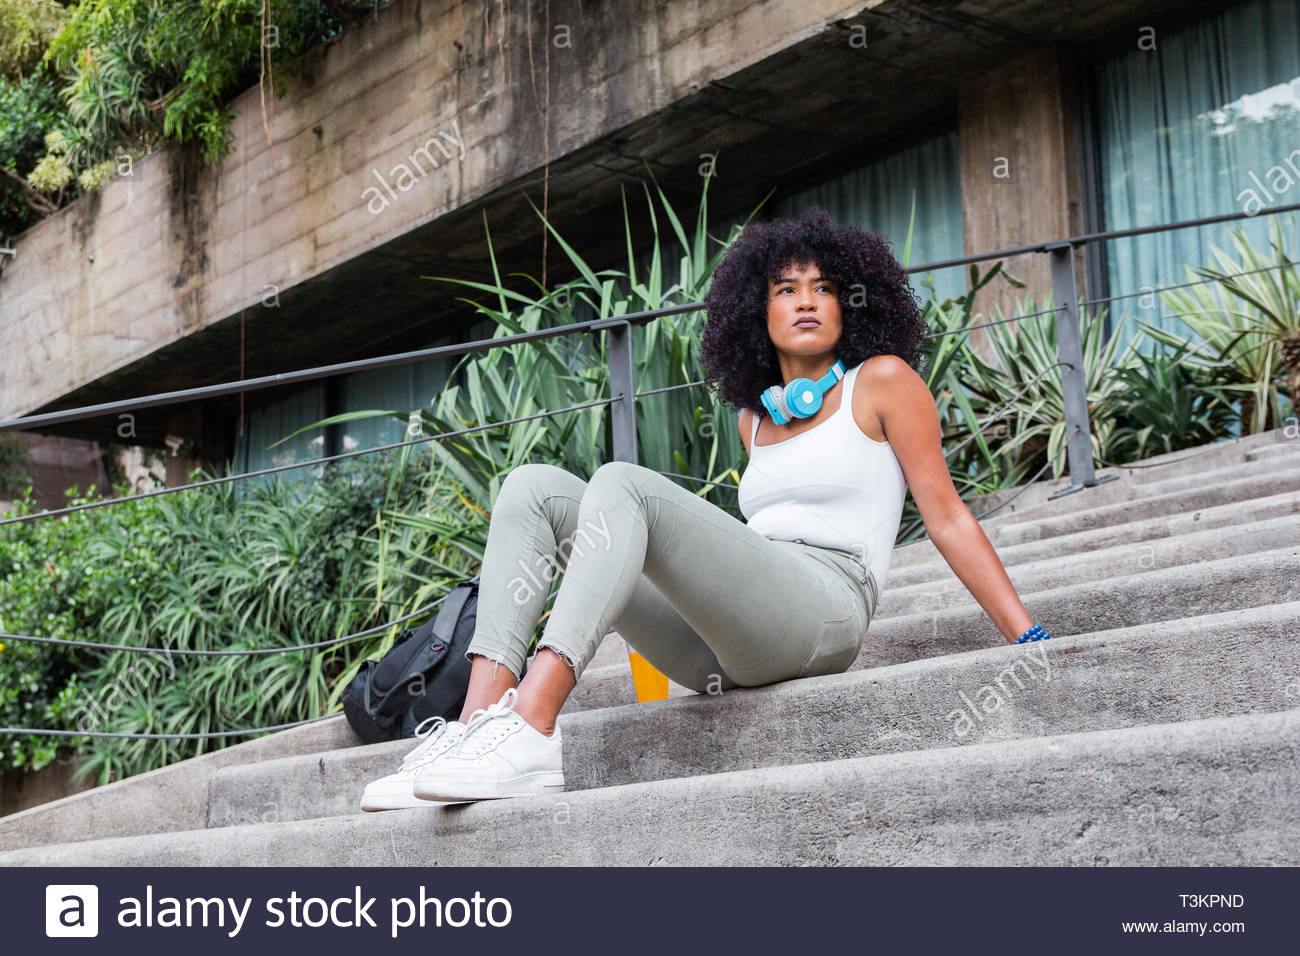 Young student hipster tourist girl with afro hairstyle sitting in the steps outside. In contemplation, relaxing and taking a break. - Stock Image